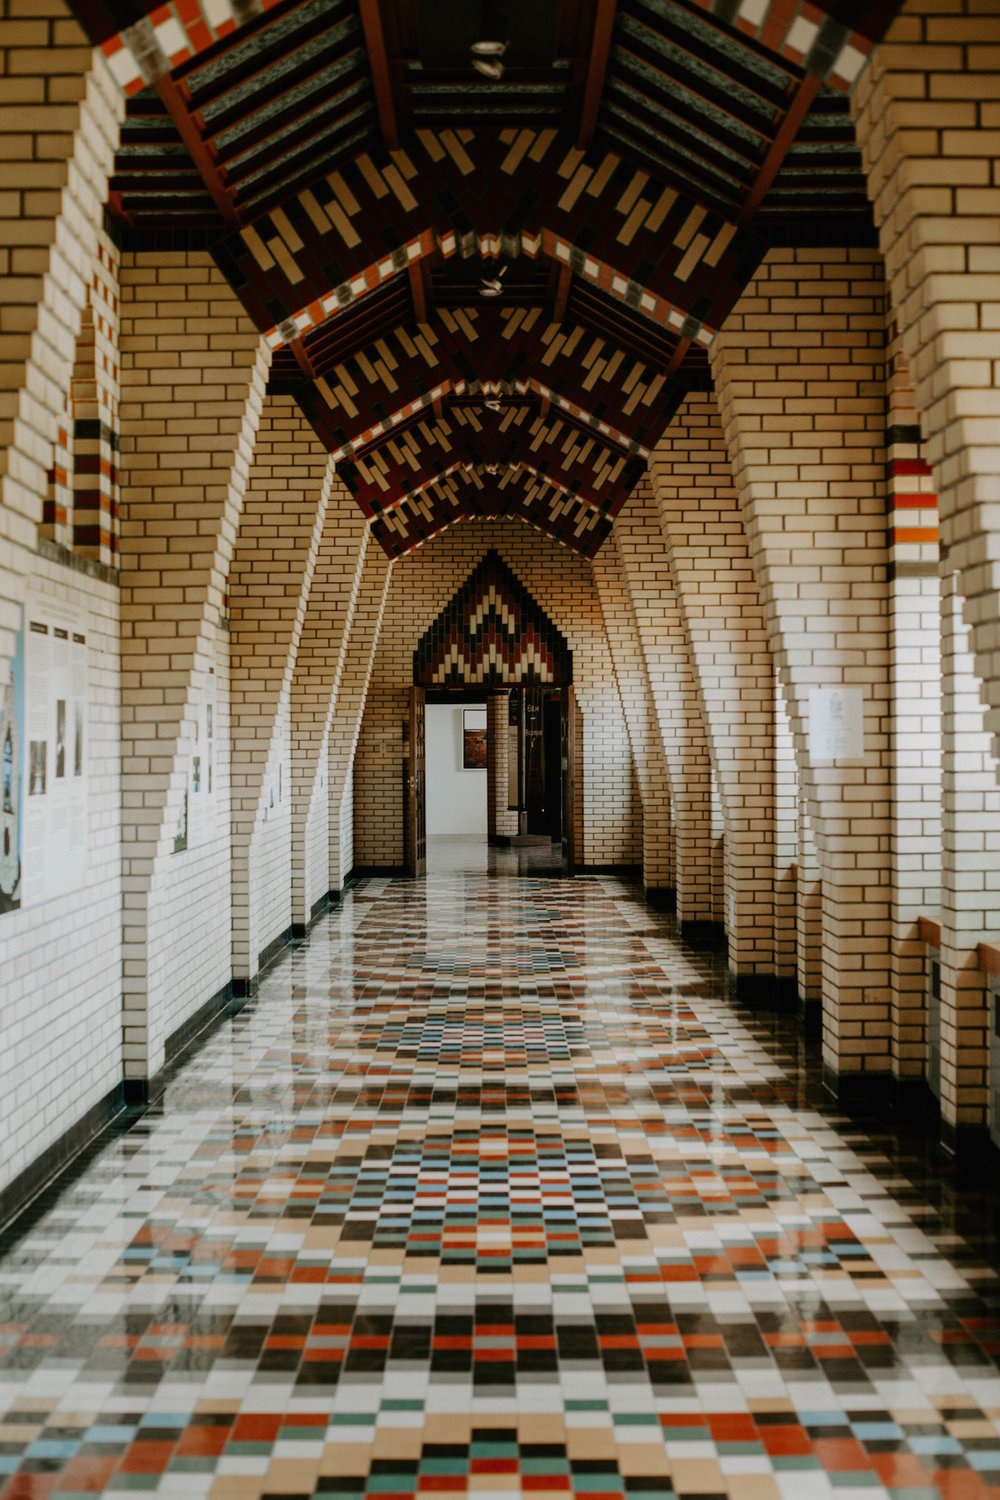 A tall hallway tiled in colors of tan, white, turquoise, red, and black in a geometric pattern, leading to a door at the end